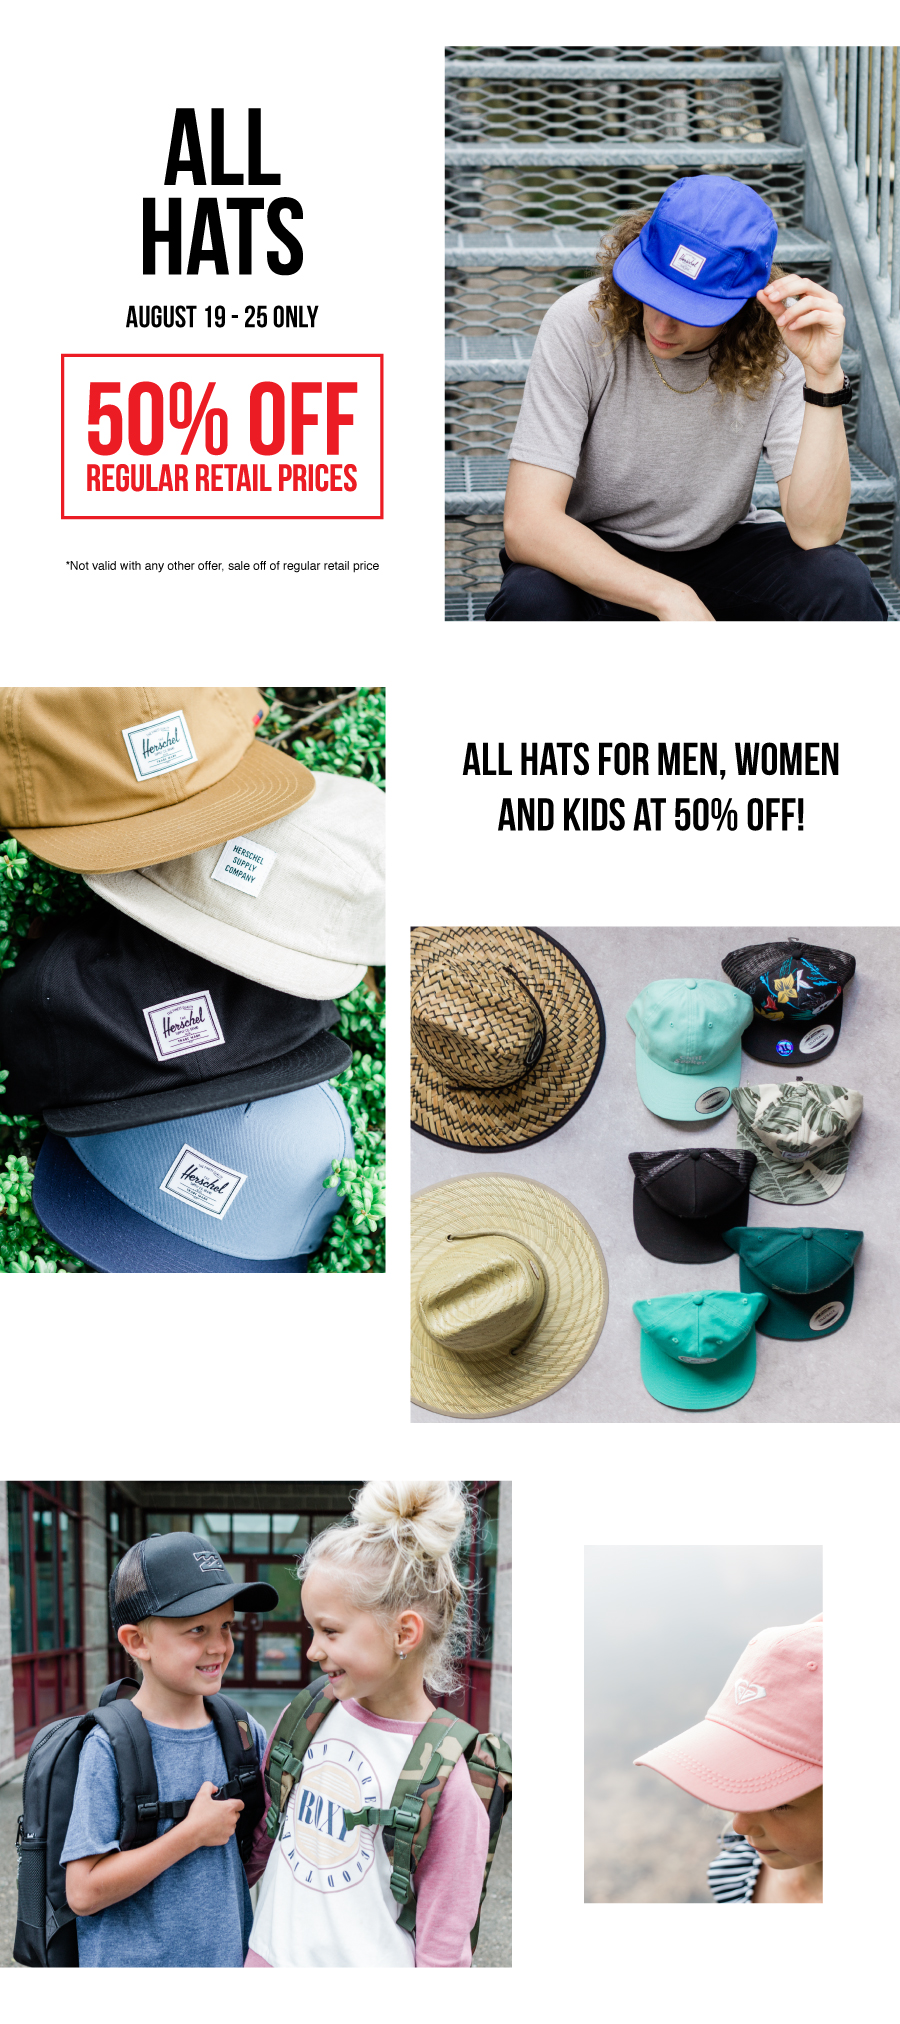 All hats are 50% off from August 9-25 as the DEAL OF THE WEEK at Premium Label Outlet!